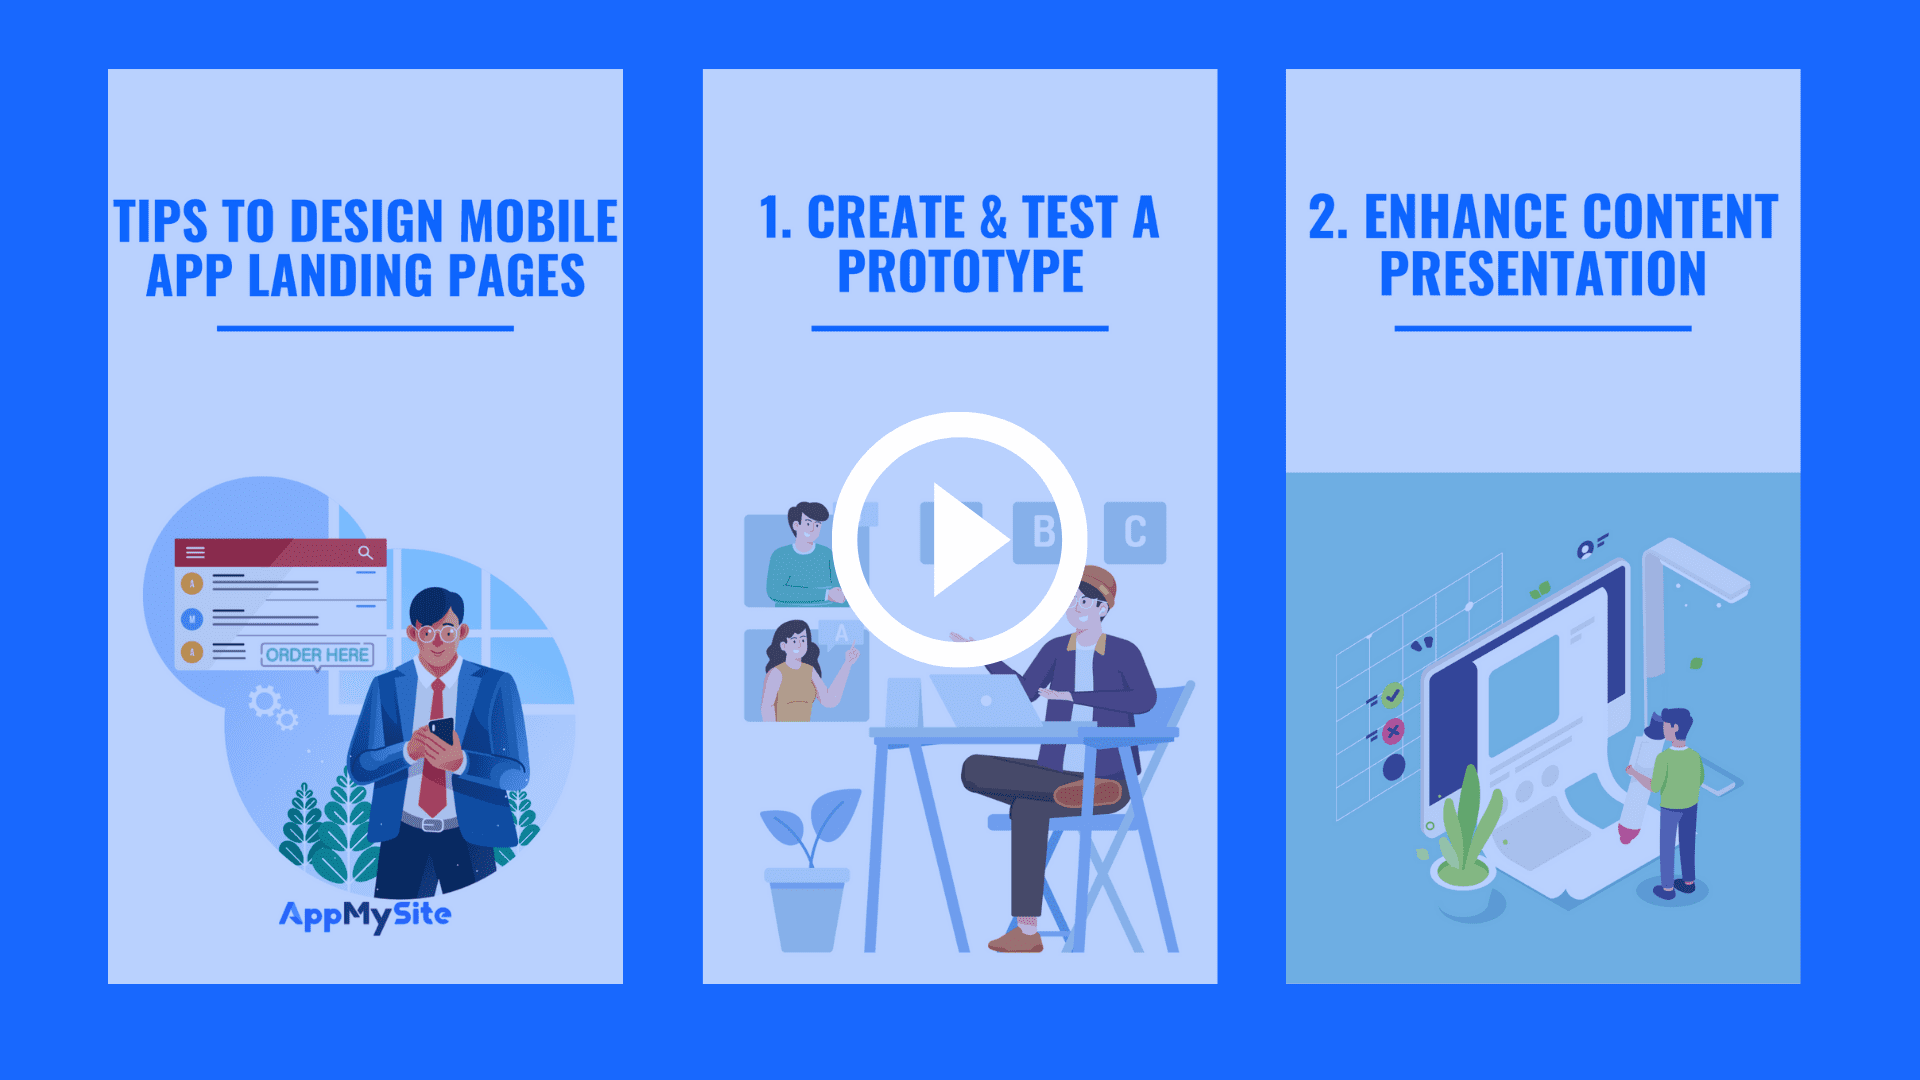 Tips to design mobile app landing pages